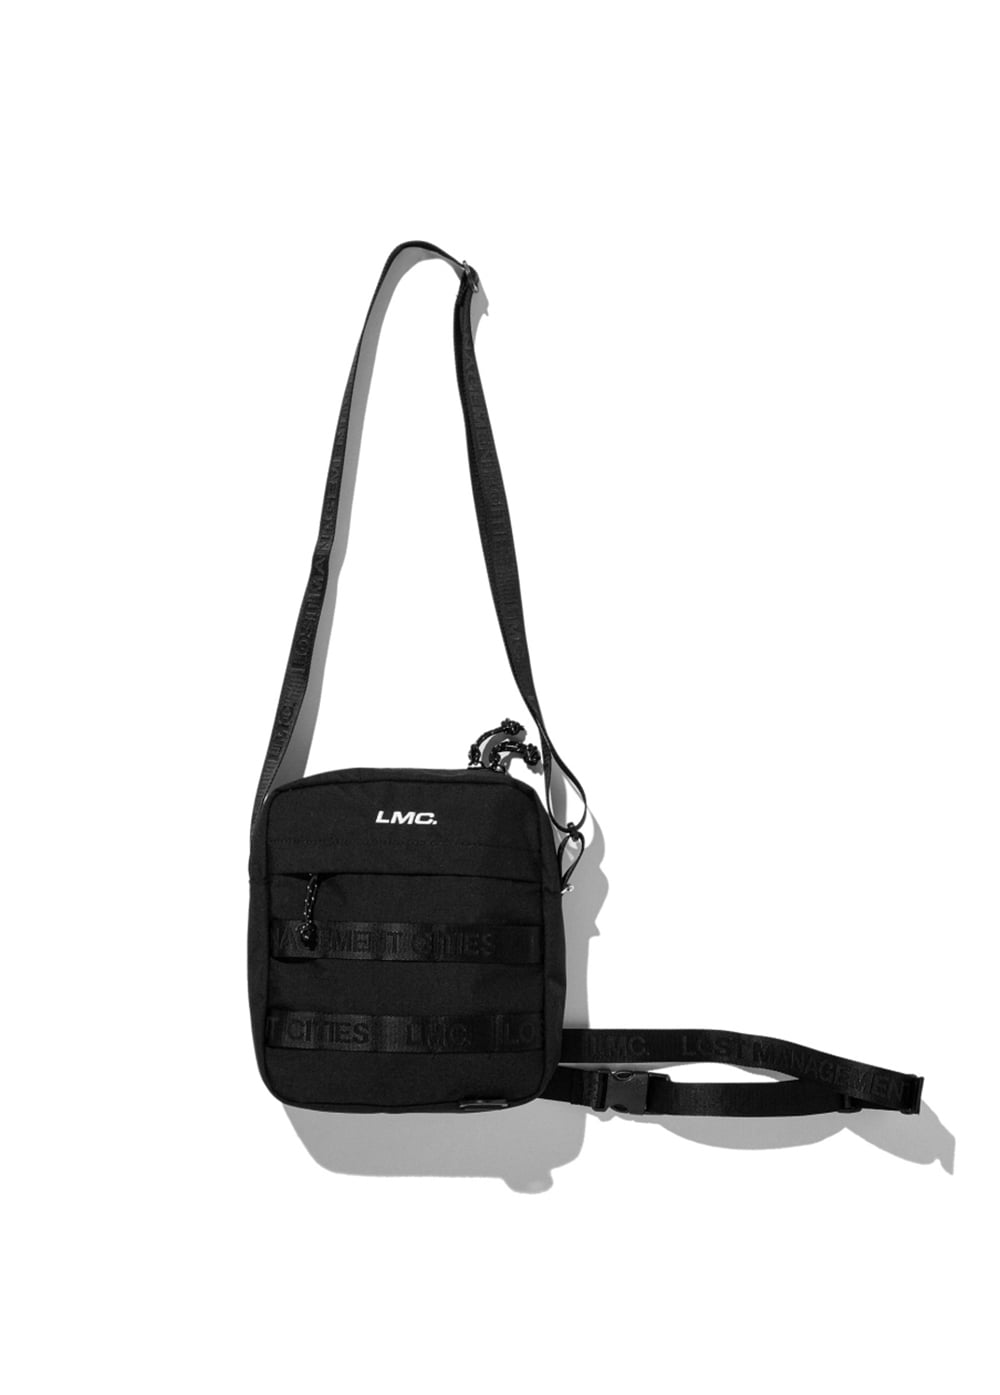 LMC SYSTEM MINI SHOULDER BAG black